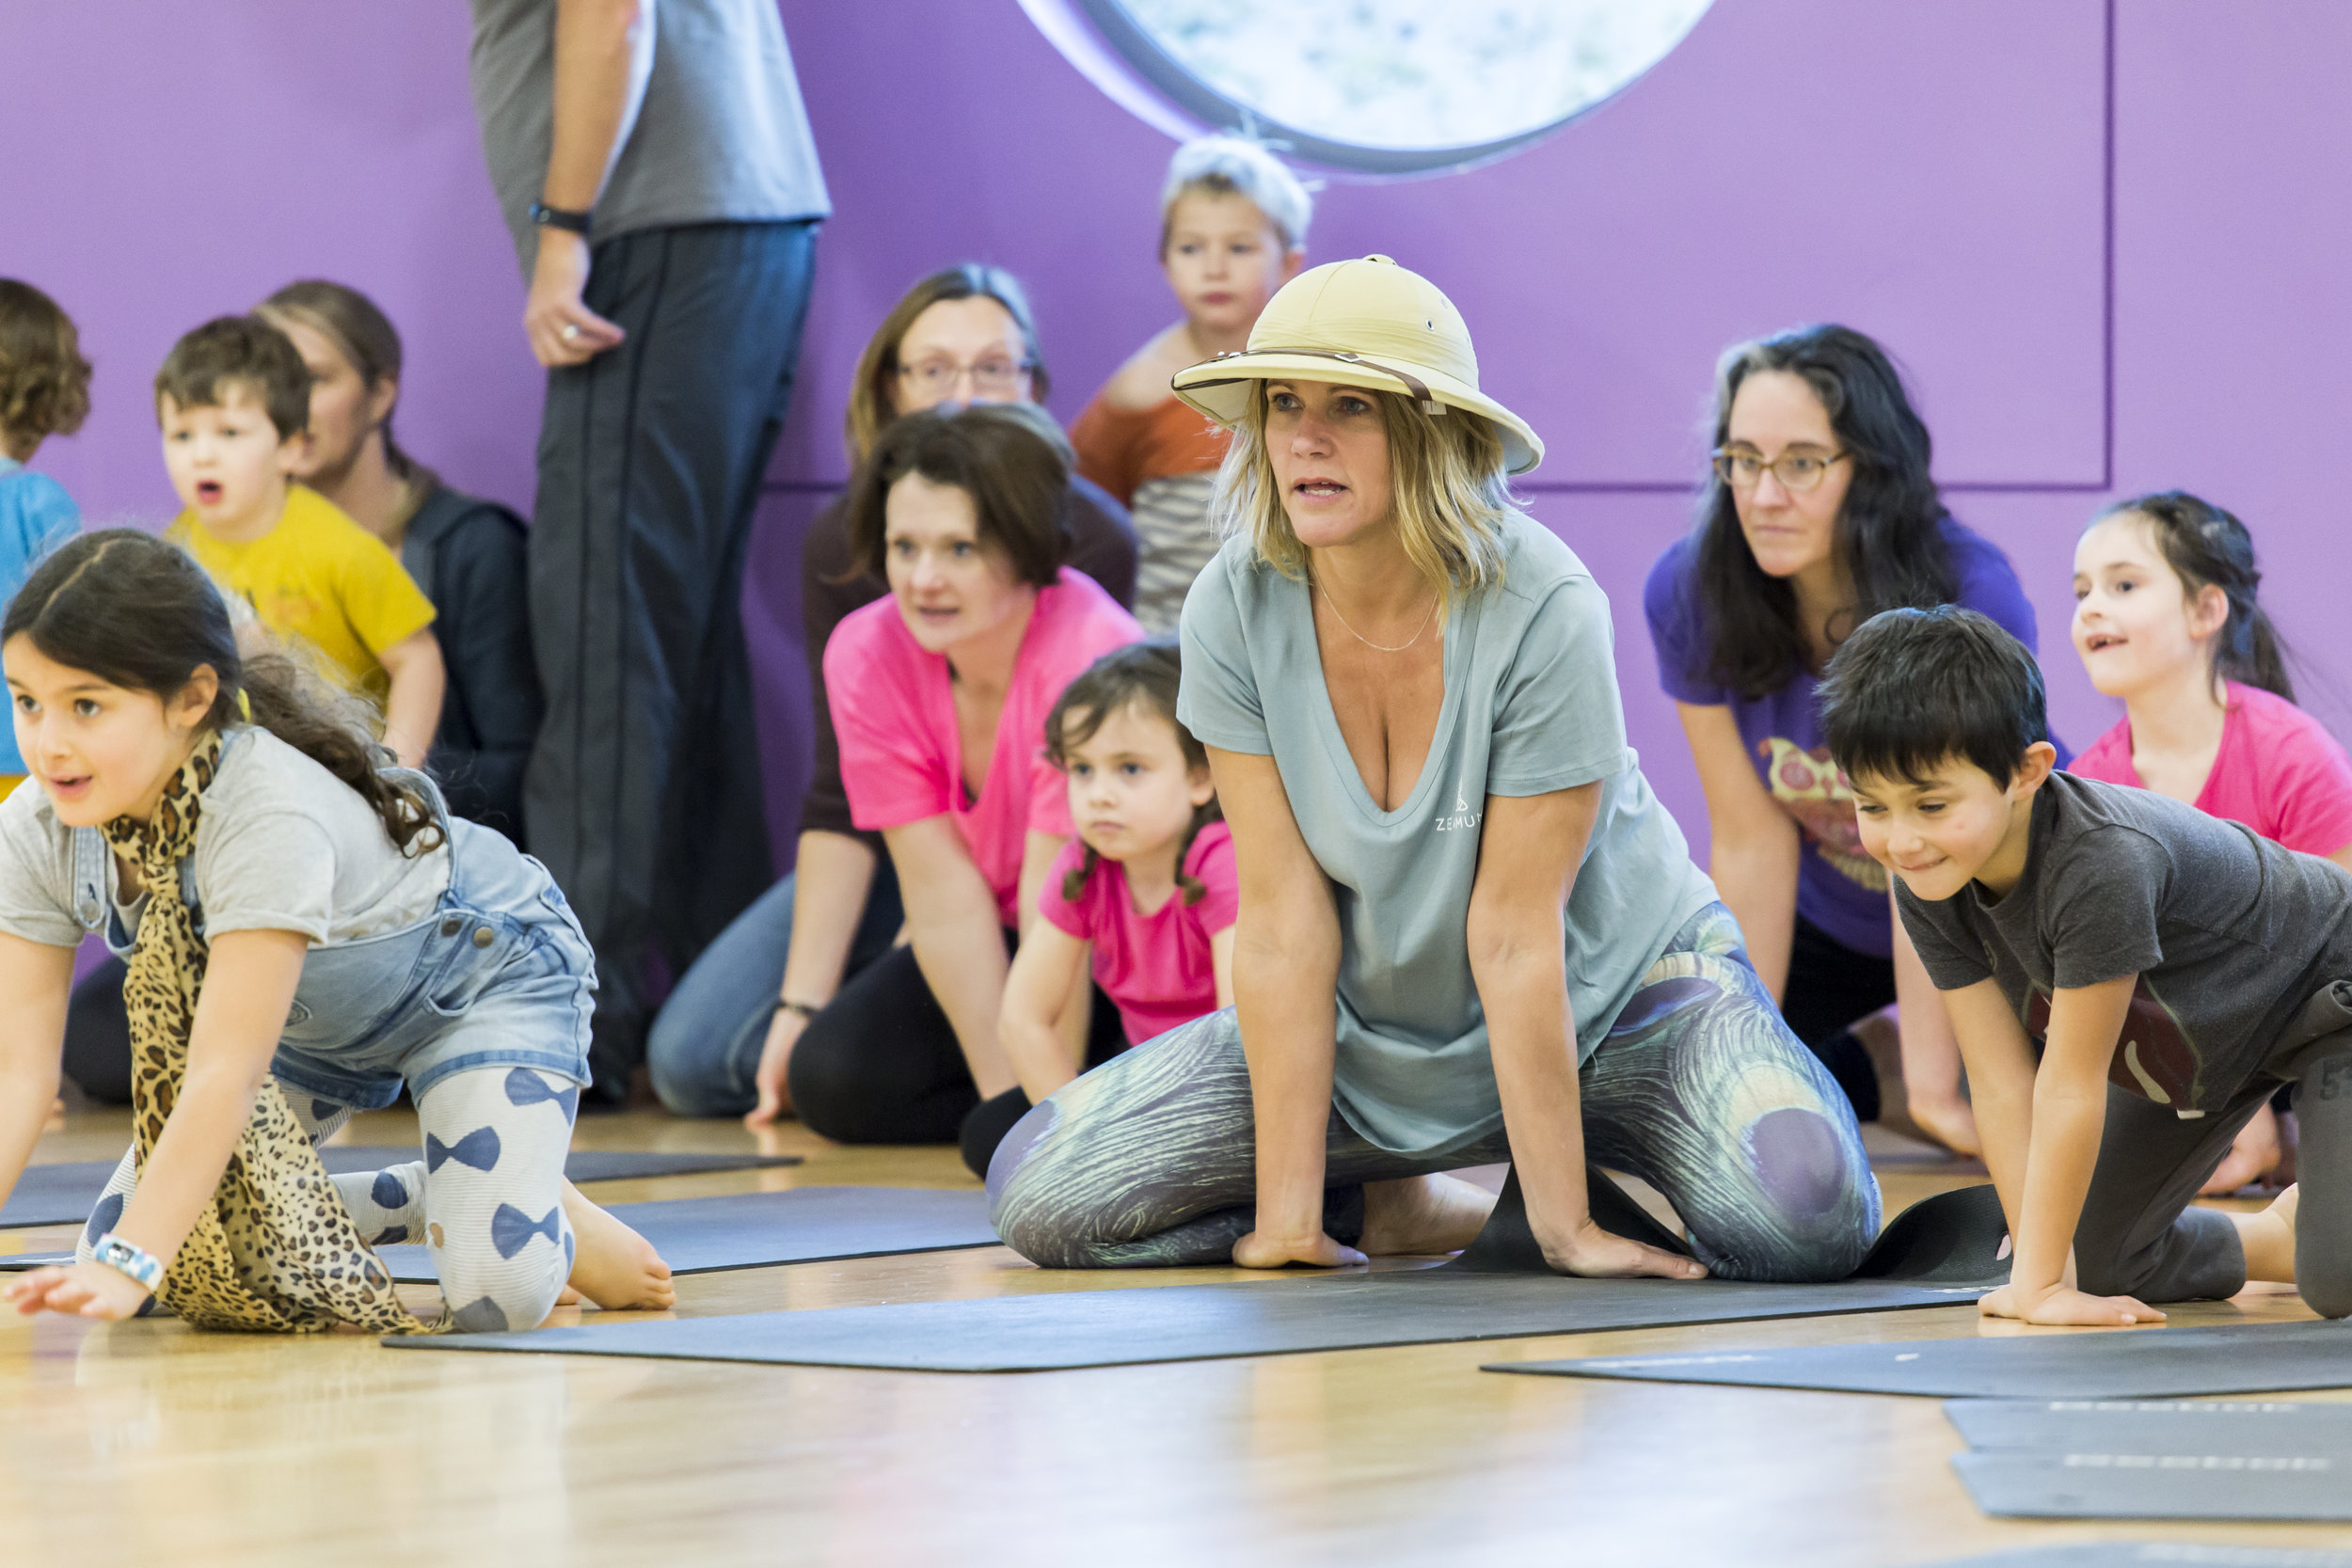 specialised yoga teacher training package - Package includes Pregnancy Yoga, Baby Yoga & Massage and Post-Natal Yoga and Children's Yoga teacher training.The ZenMuma Specialised Yoga package provides you with a professional certification in Pregnancy Yoga, Baby Yoga & Massage and Post-Natal Yoga and Children's Yoga.135-hour total, nine-day contact training. £1700Learn More.